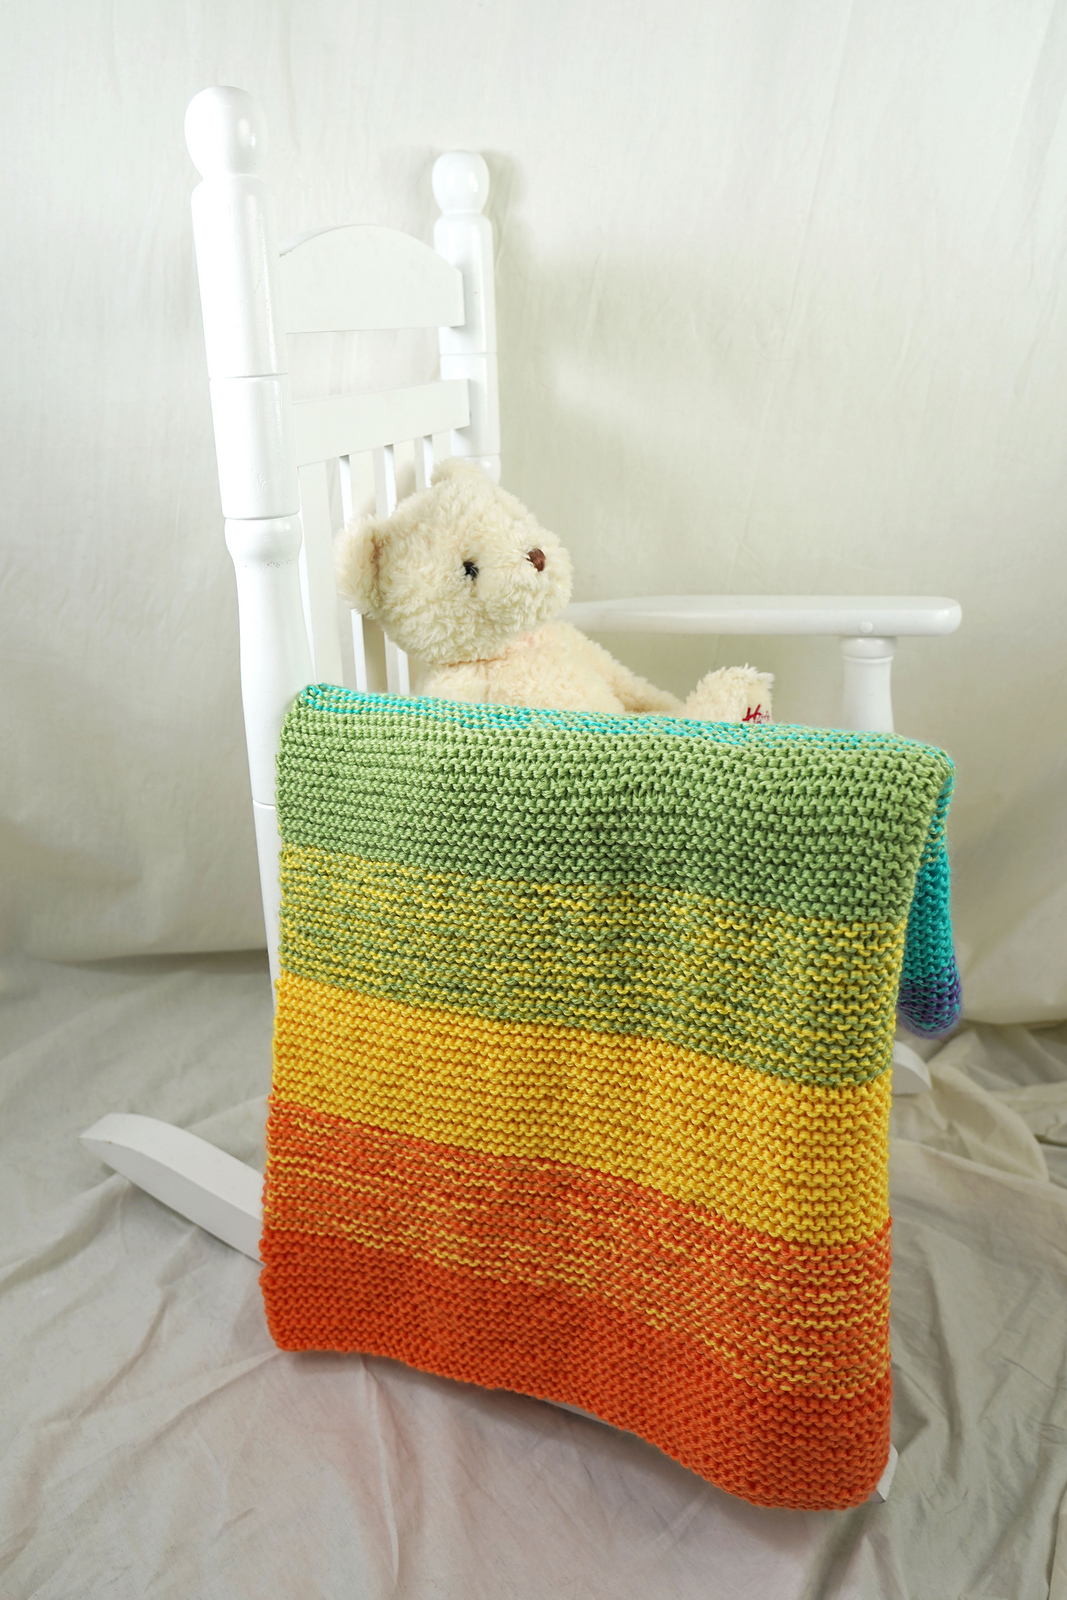 easy knit baby blanket pattern in garter stitch and wide knit stripes